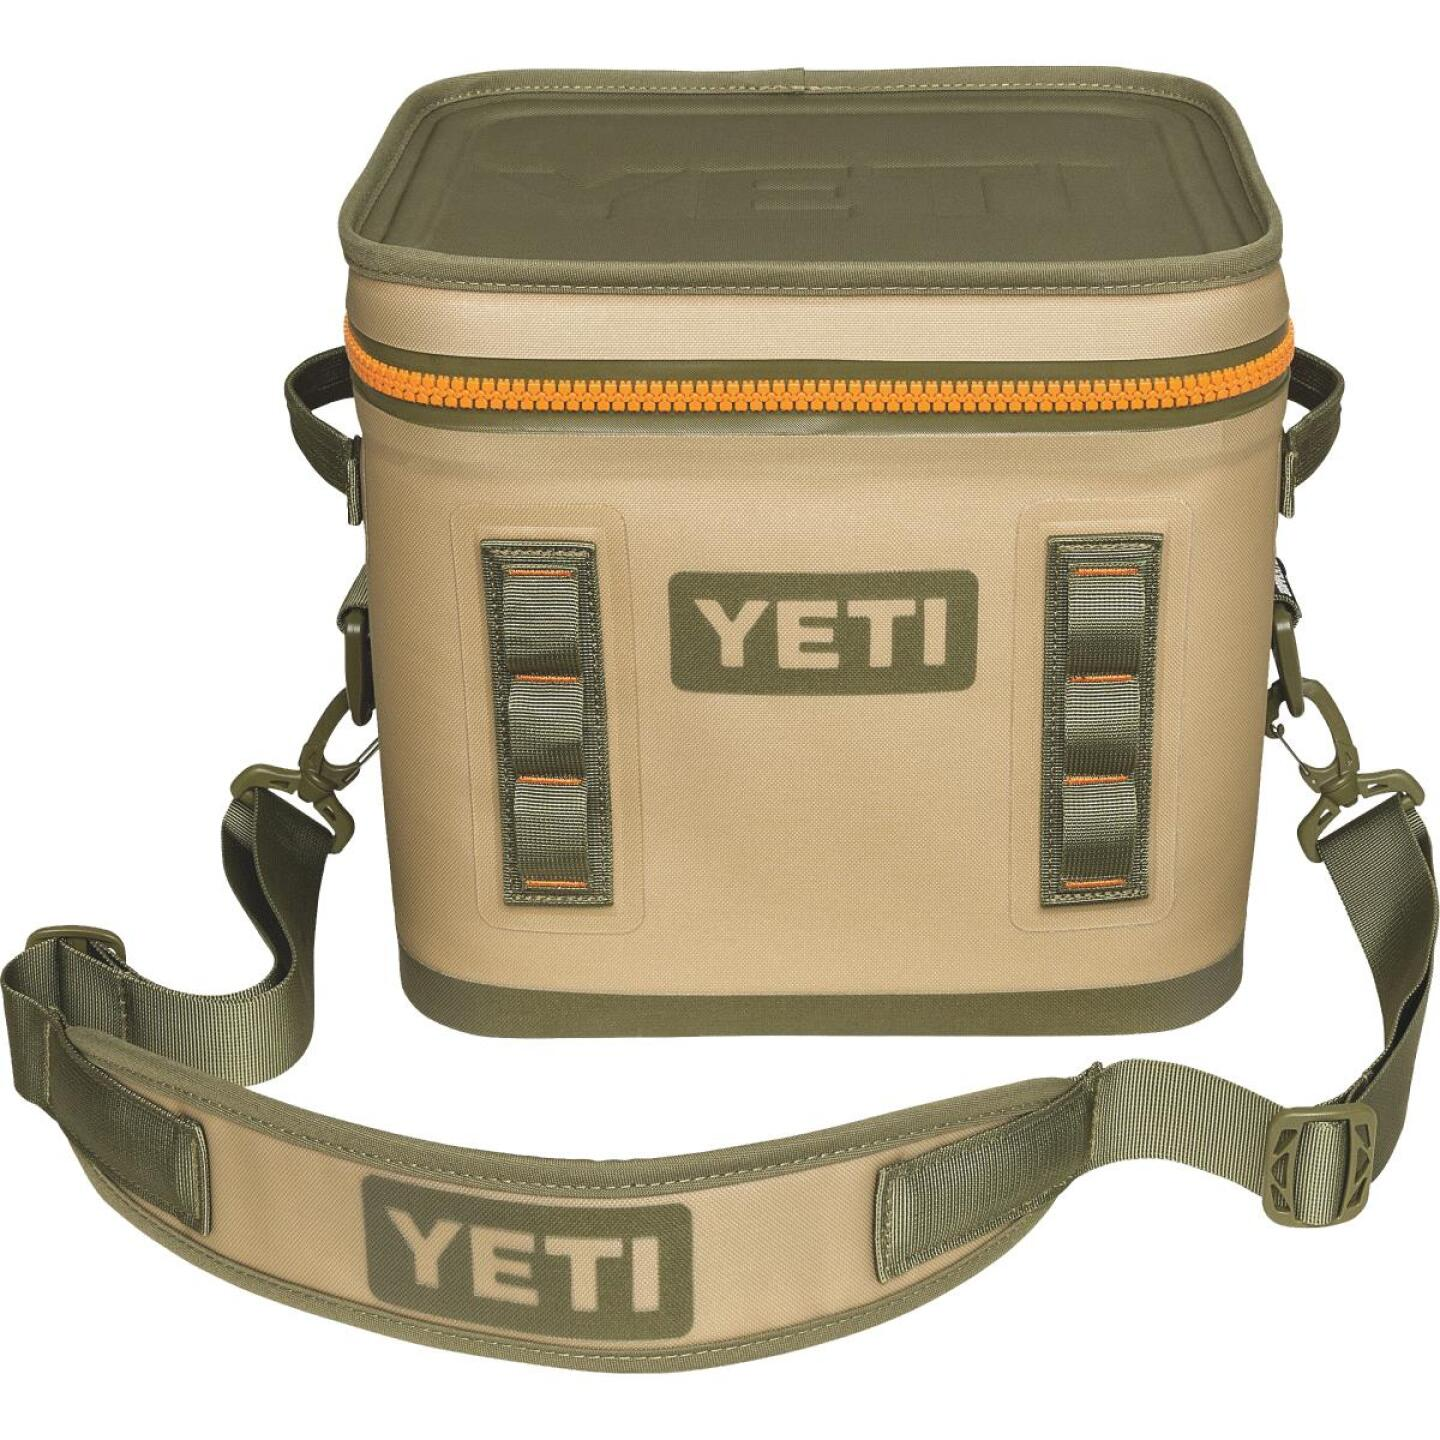 Yeti Hopper Flip 12, 13-Can Soft-Side Cooler, Tan Image 1